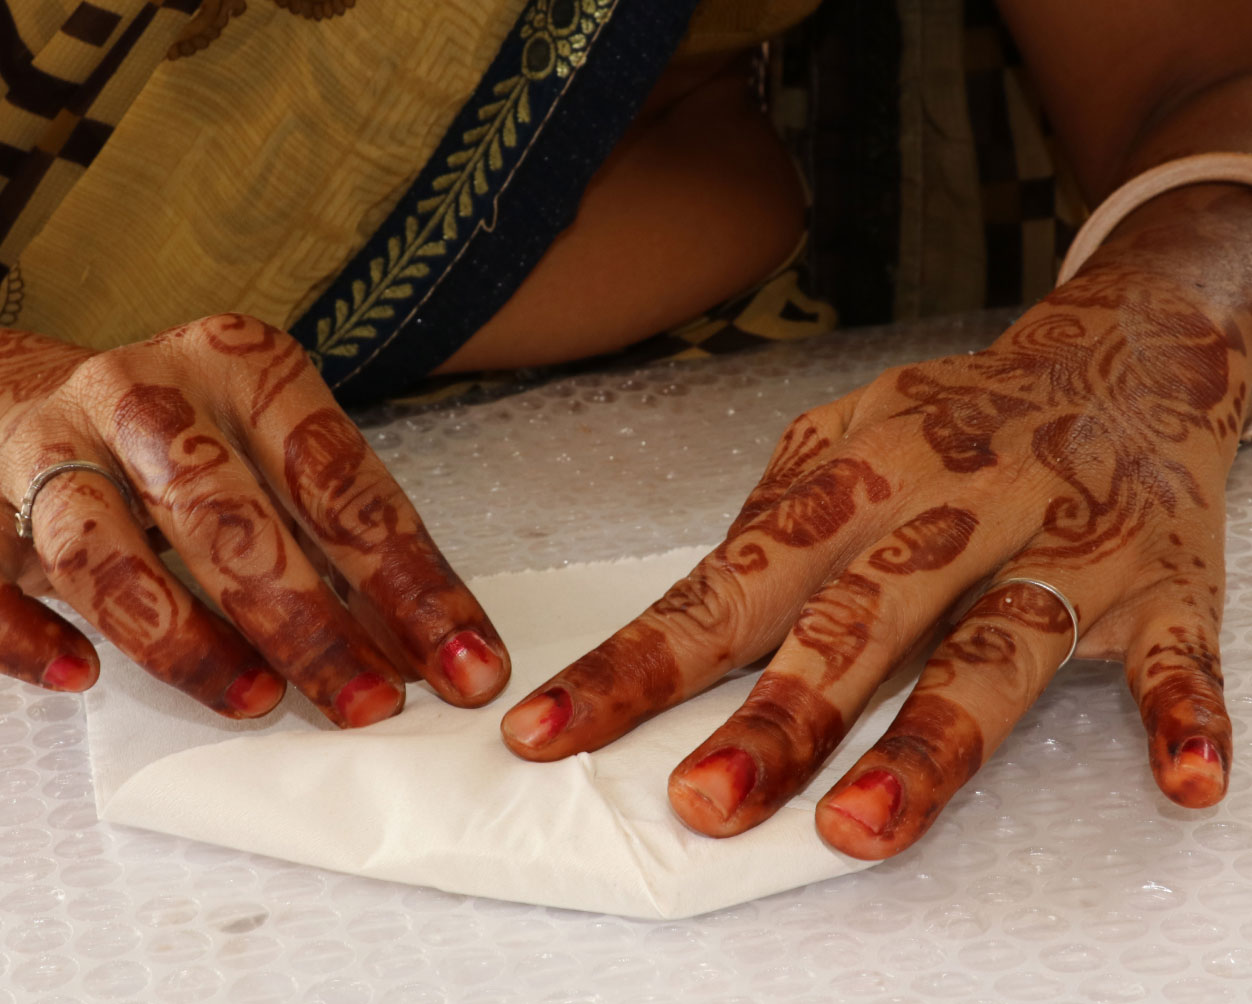 A close-up picture of hands folding a piece of white fabric.